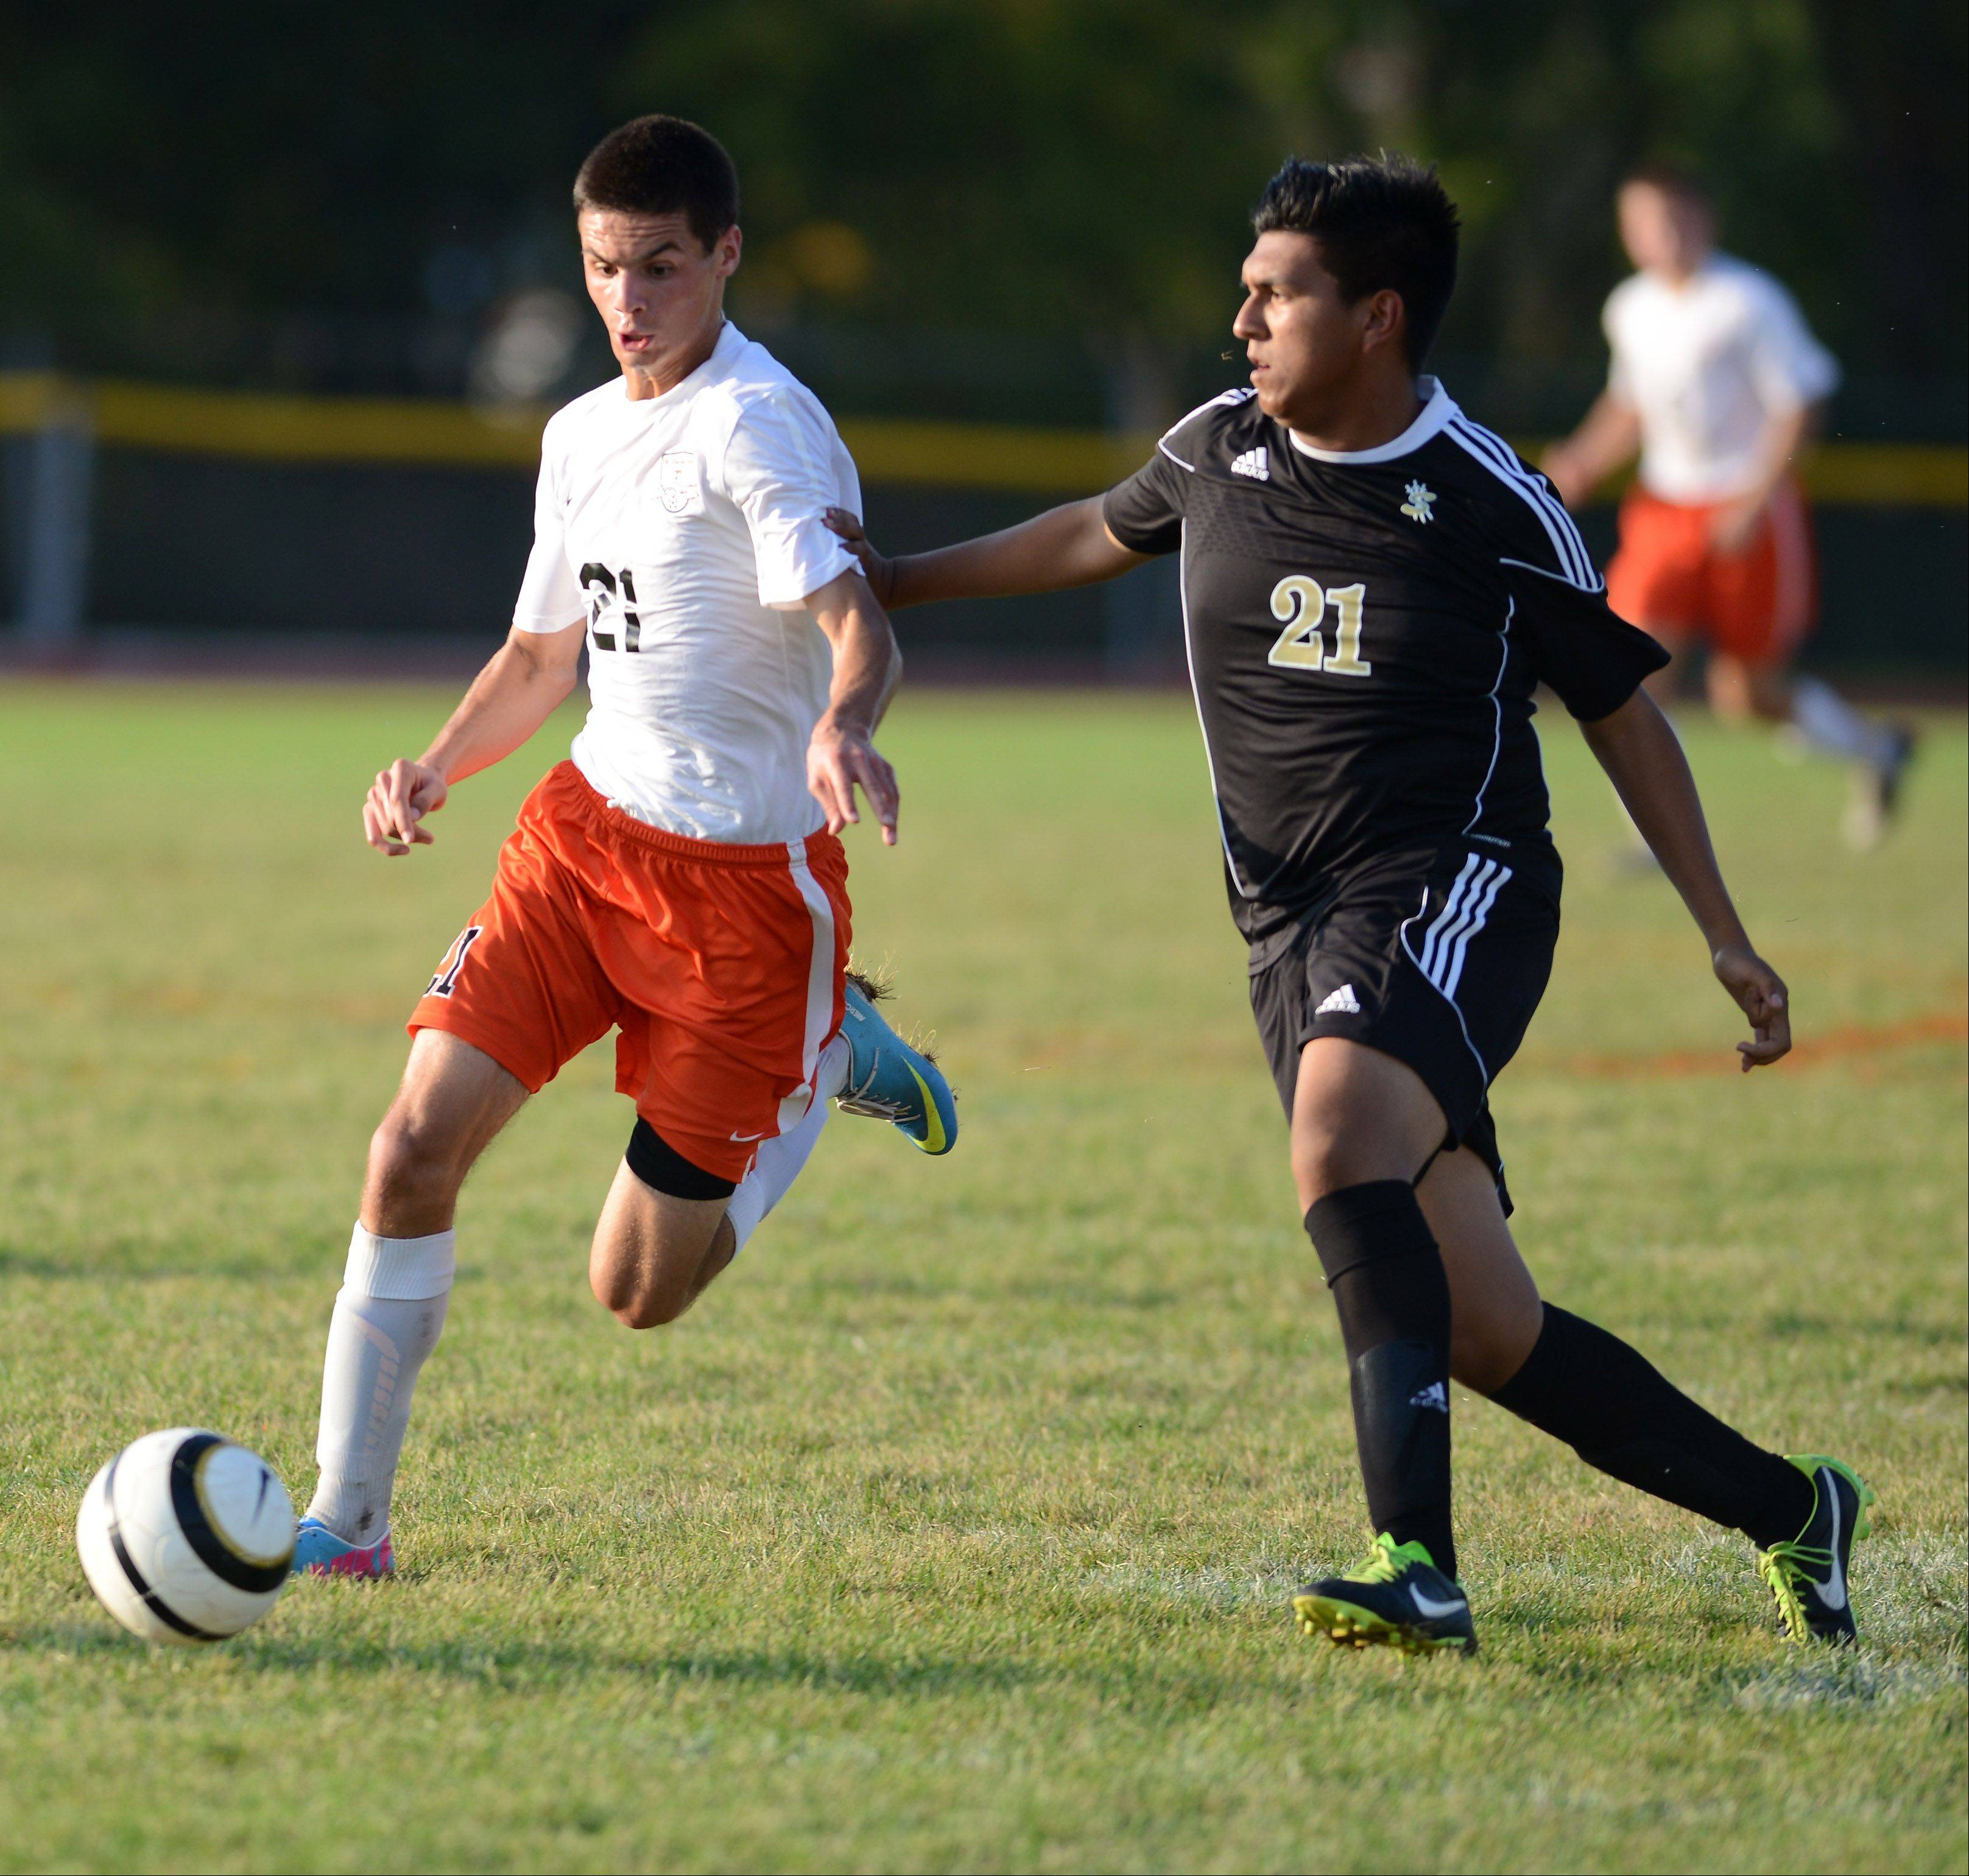 St. Charles East�s Daniel DiLeonardi brings the ball upfield while being defended by Streamwood�s Manny Carrillo during Thursday�s game in St. Charles.